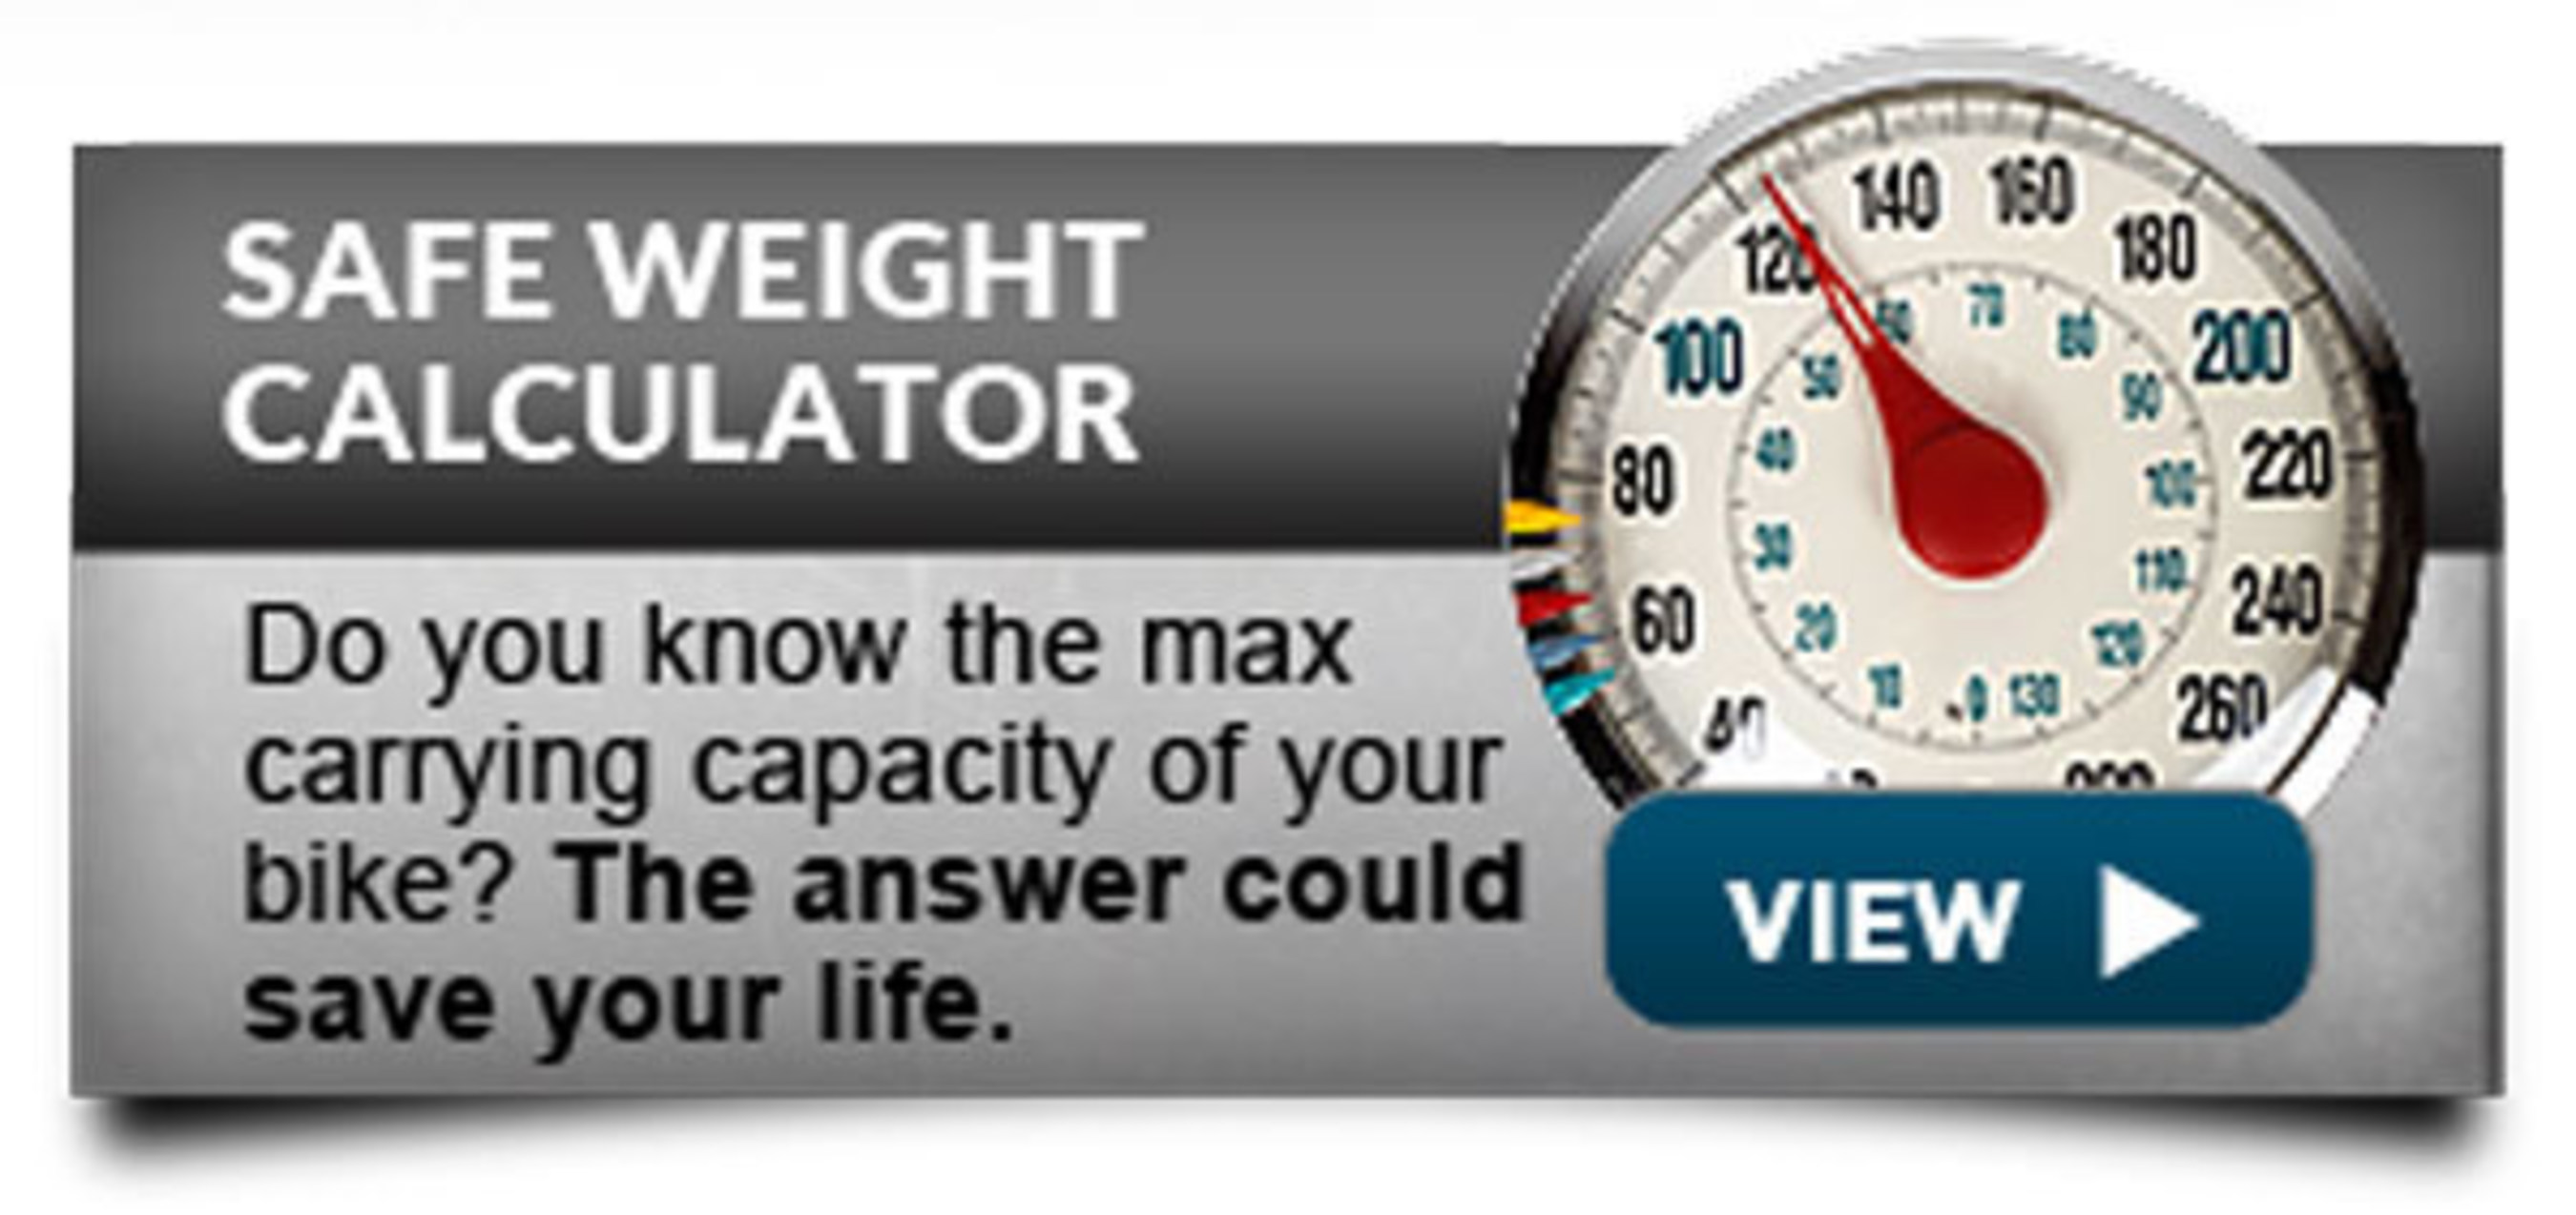 The Safe Weight Calculator tells riders of touring motorcycles how much gear they can pack without going over the manufacturer's established weight limit.